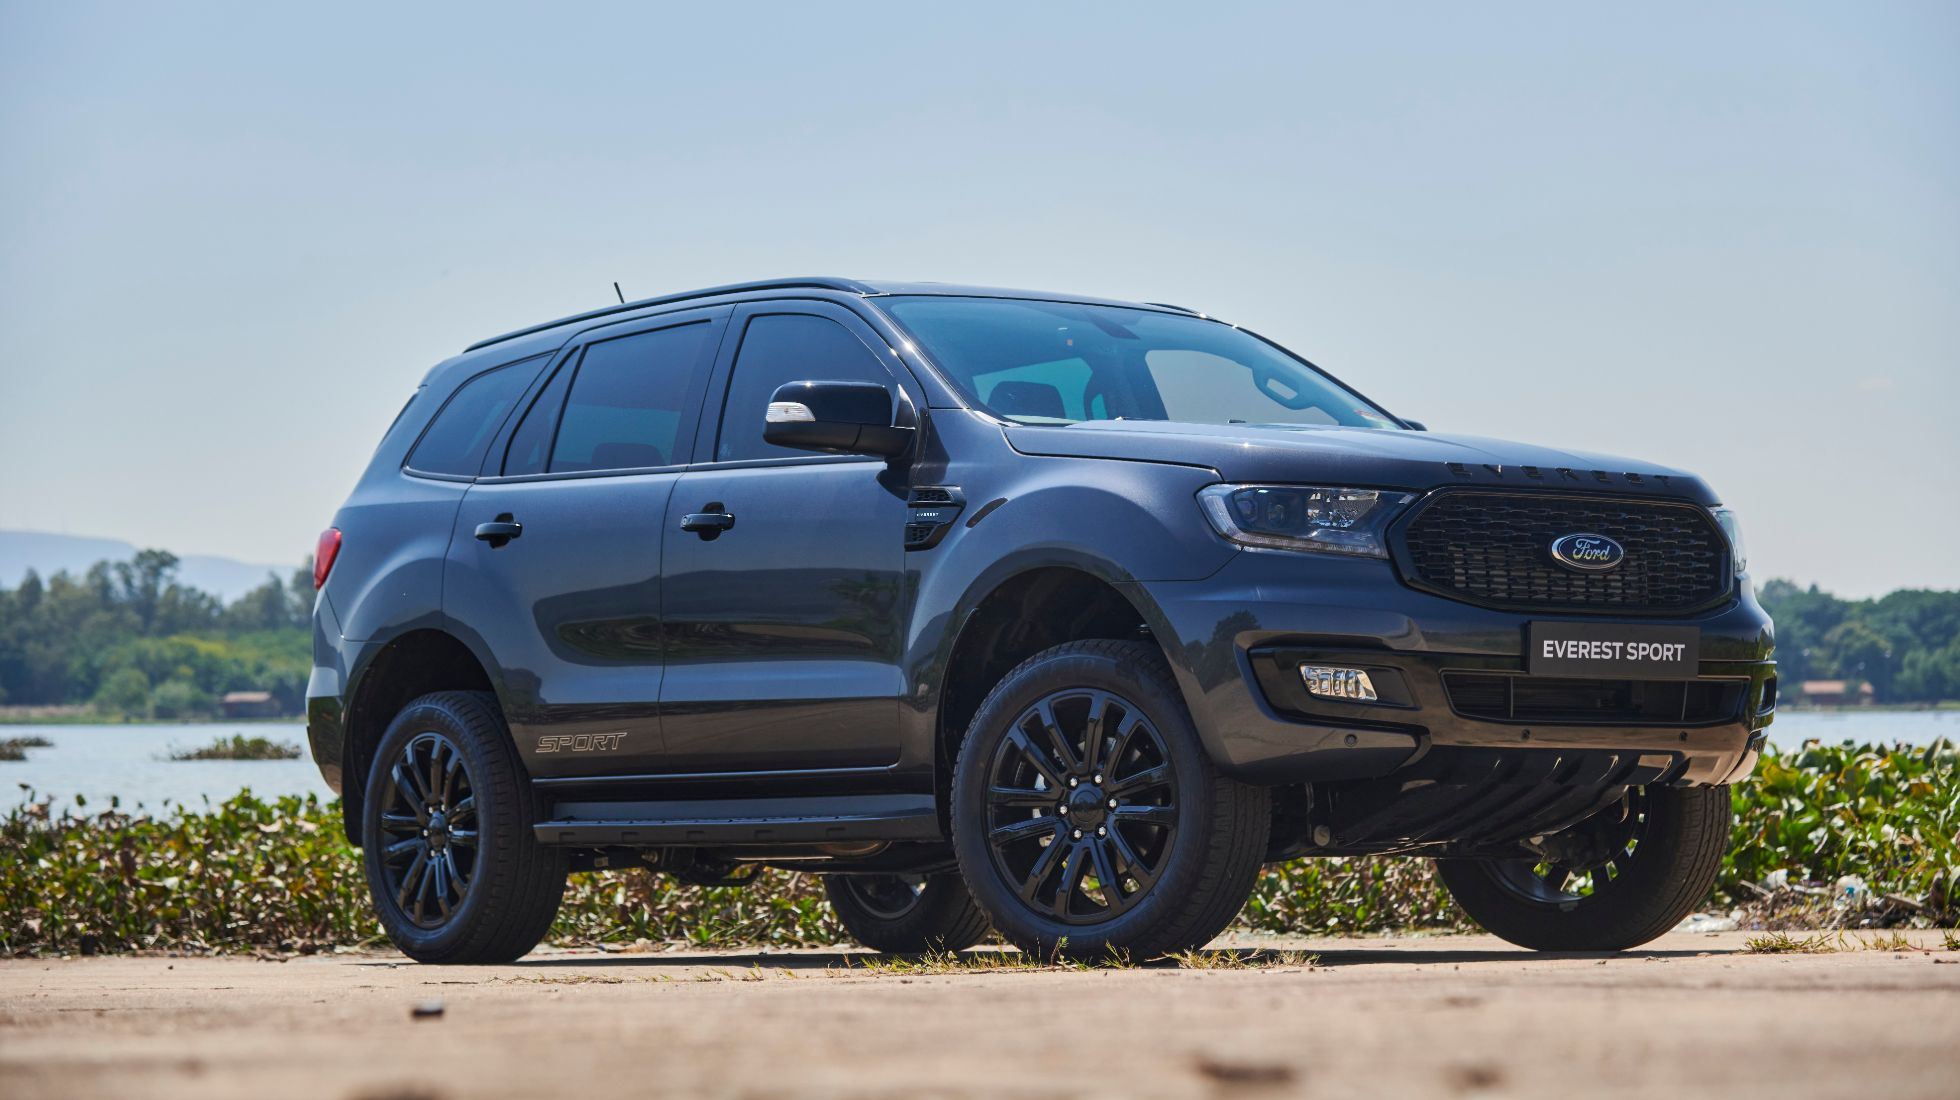 FIRST DRIVE: Ford Everest Sport